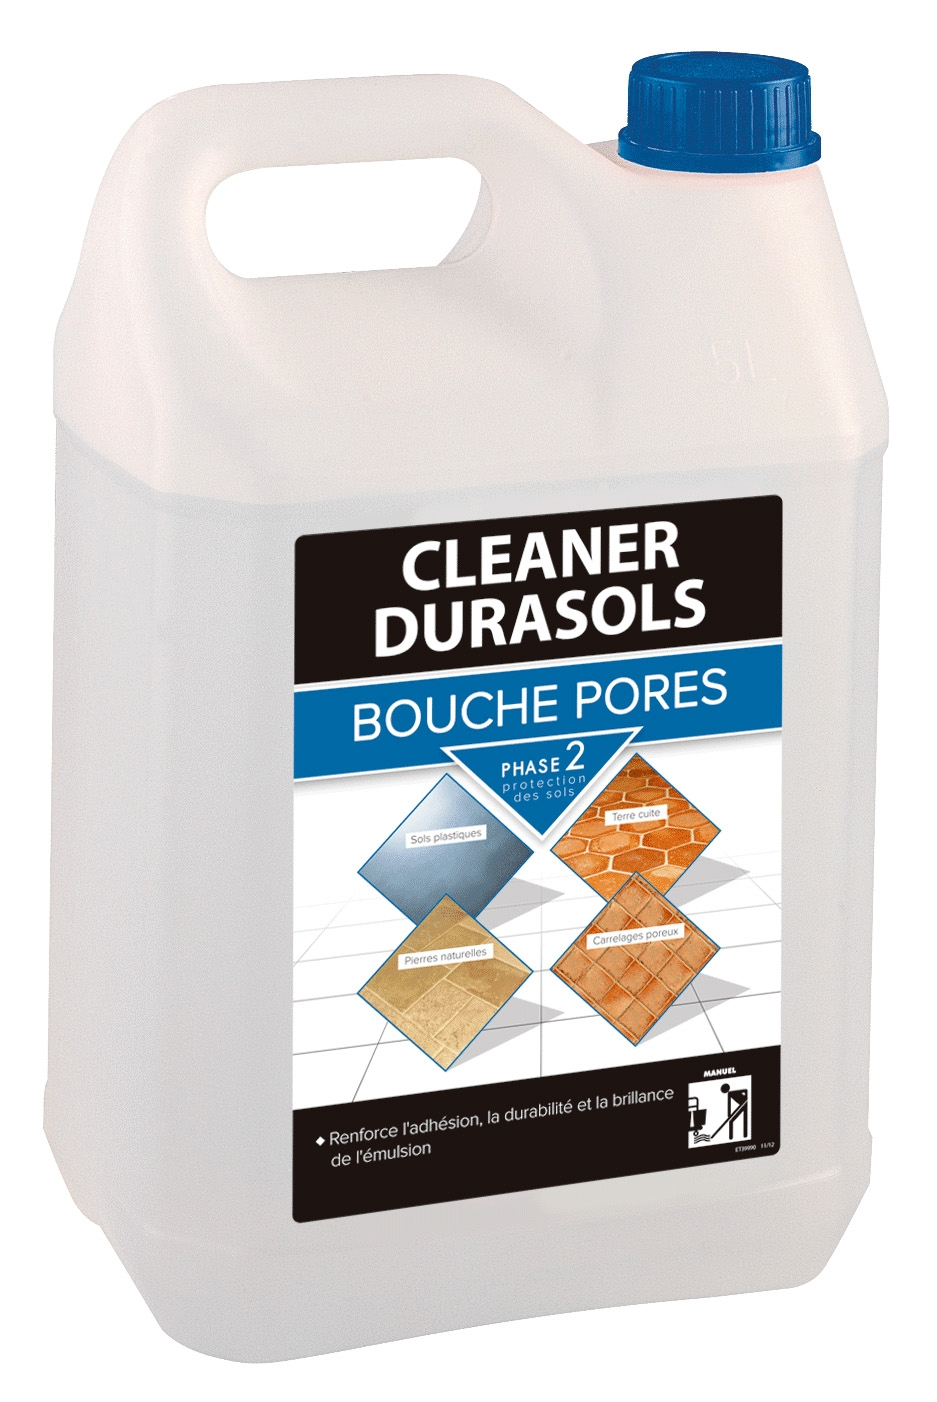 Cleaner durasols bouche pores prix for Bouche pore carrelage